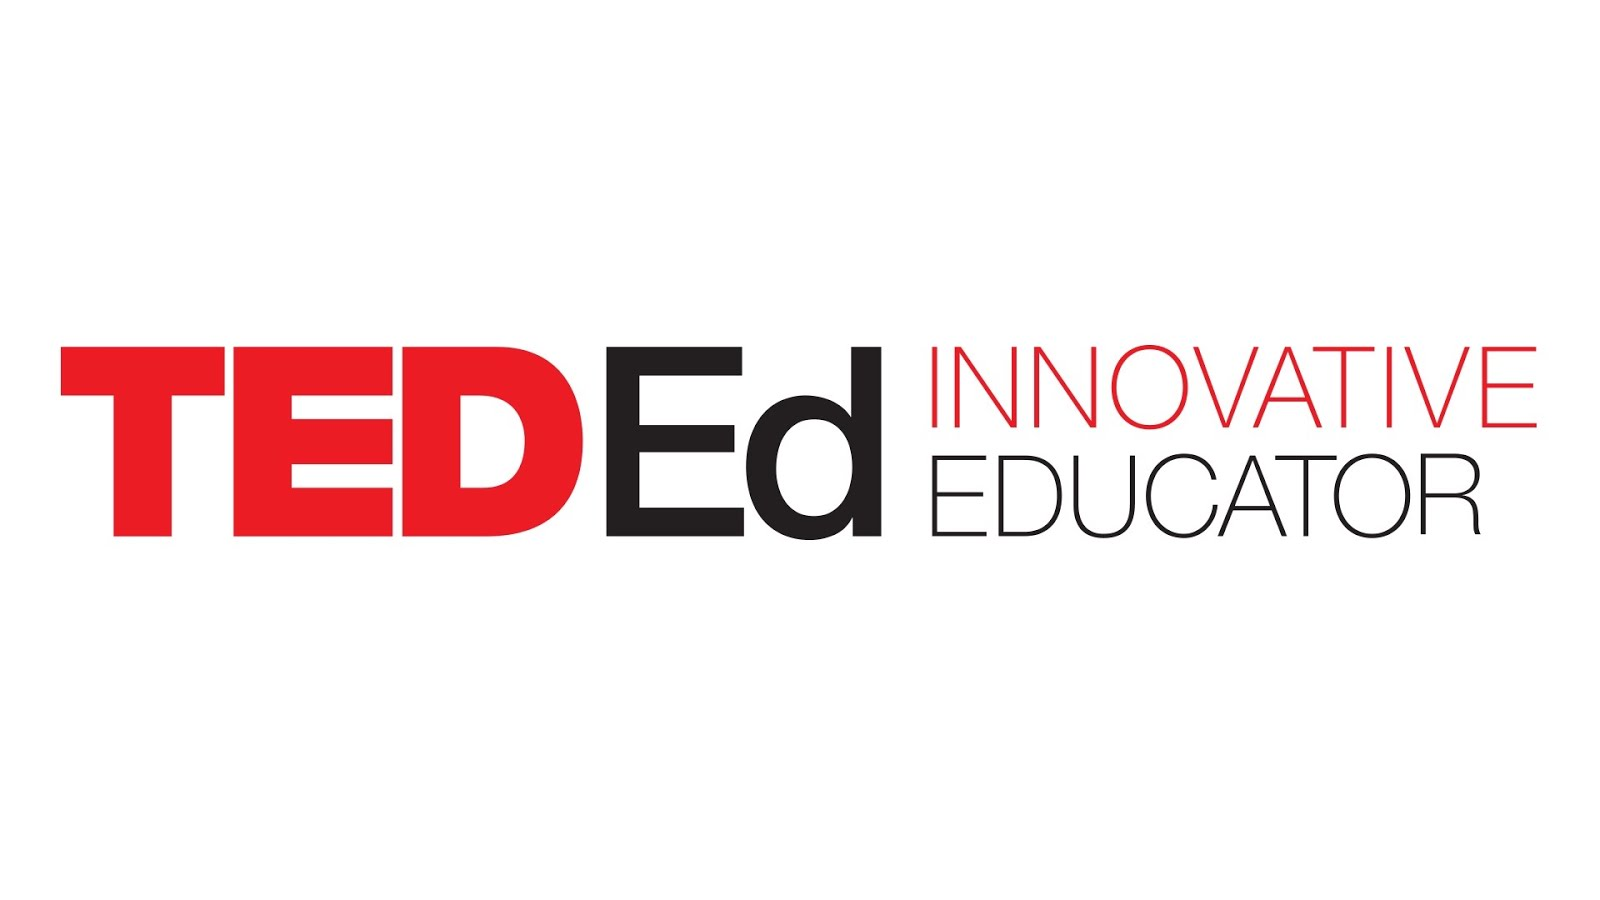 TED-Ed Innovative Educator